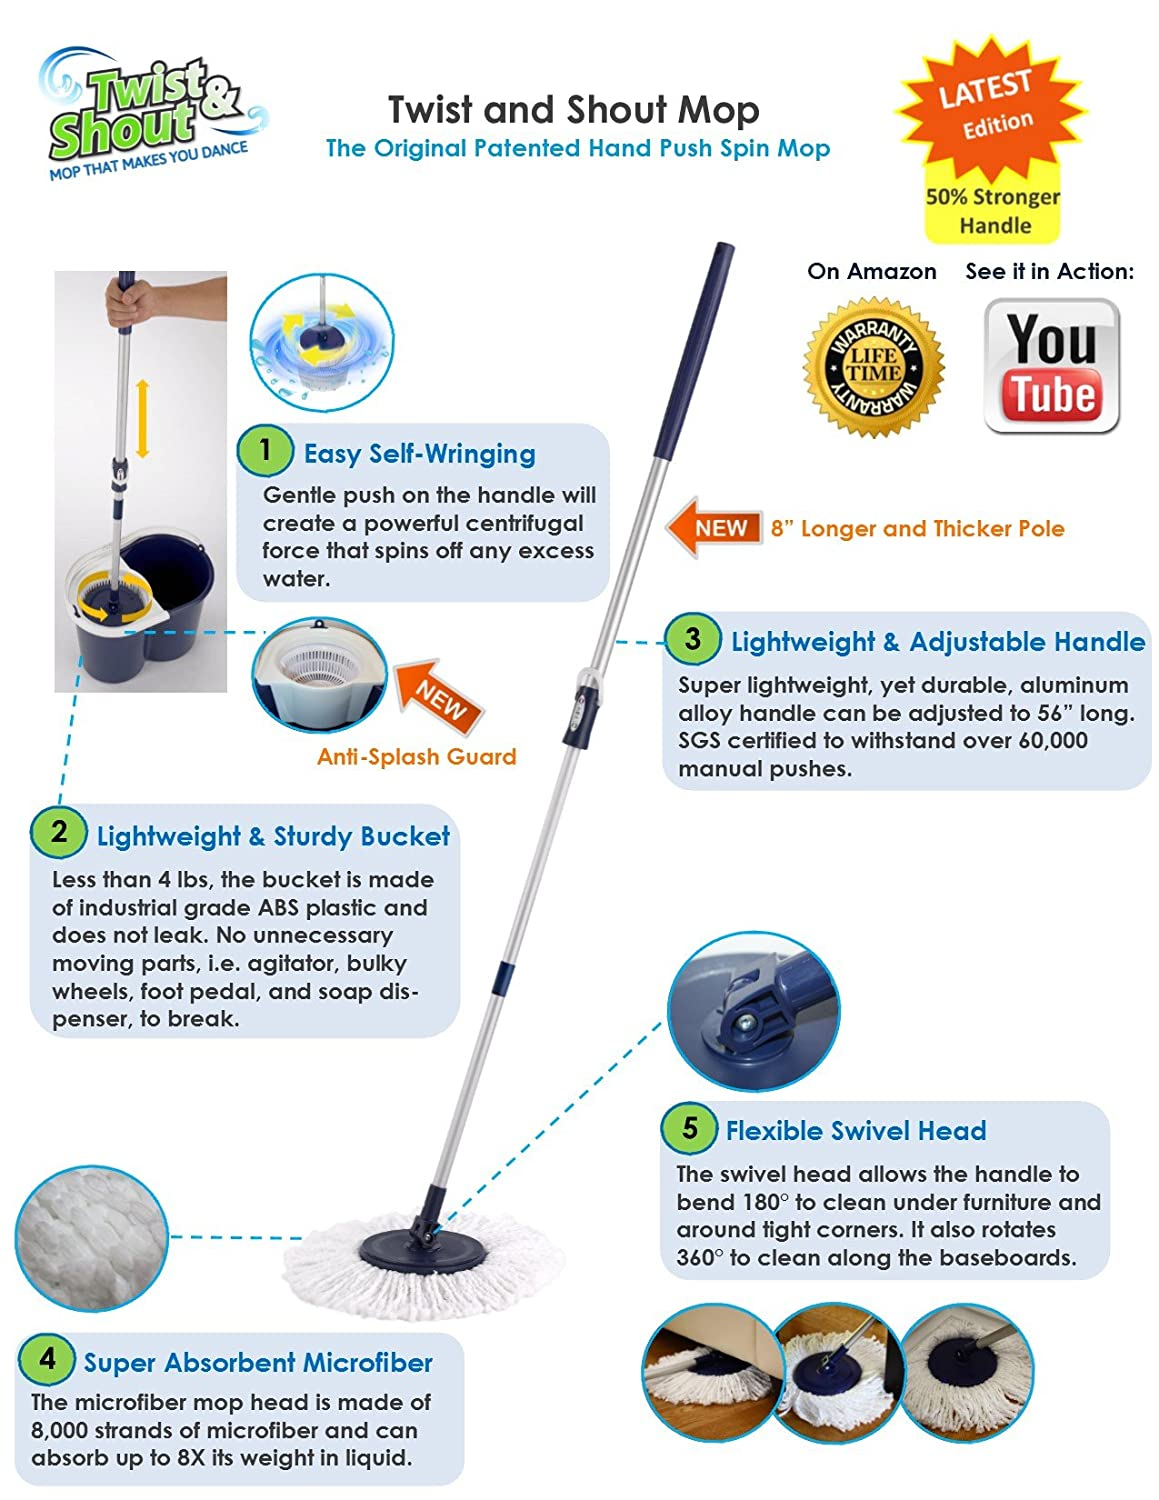 Twist and shout mop review - Amazon Com Twist And Shout Mop The Original Hand Push Spin Mop Life Time Warranty 2 Microfiber Mop Heads Included Home Kitchen